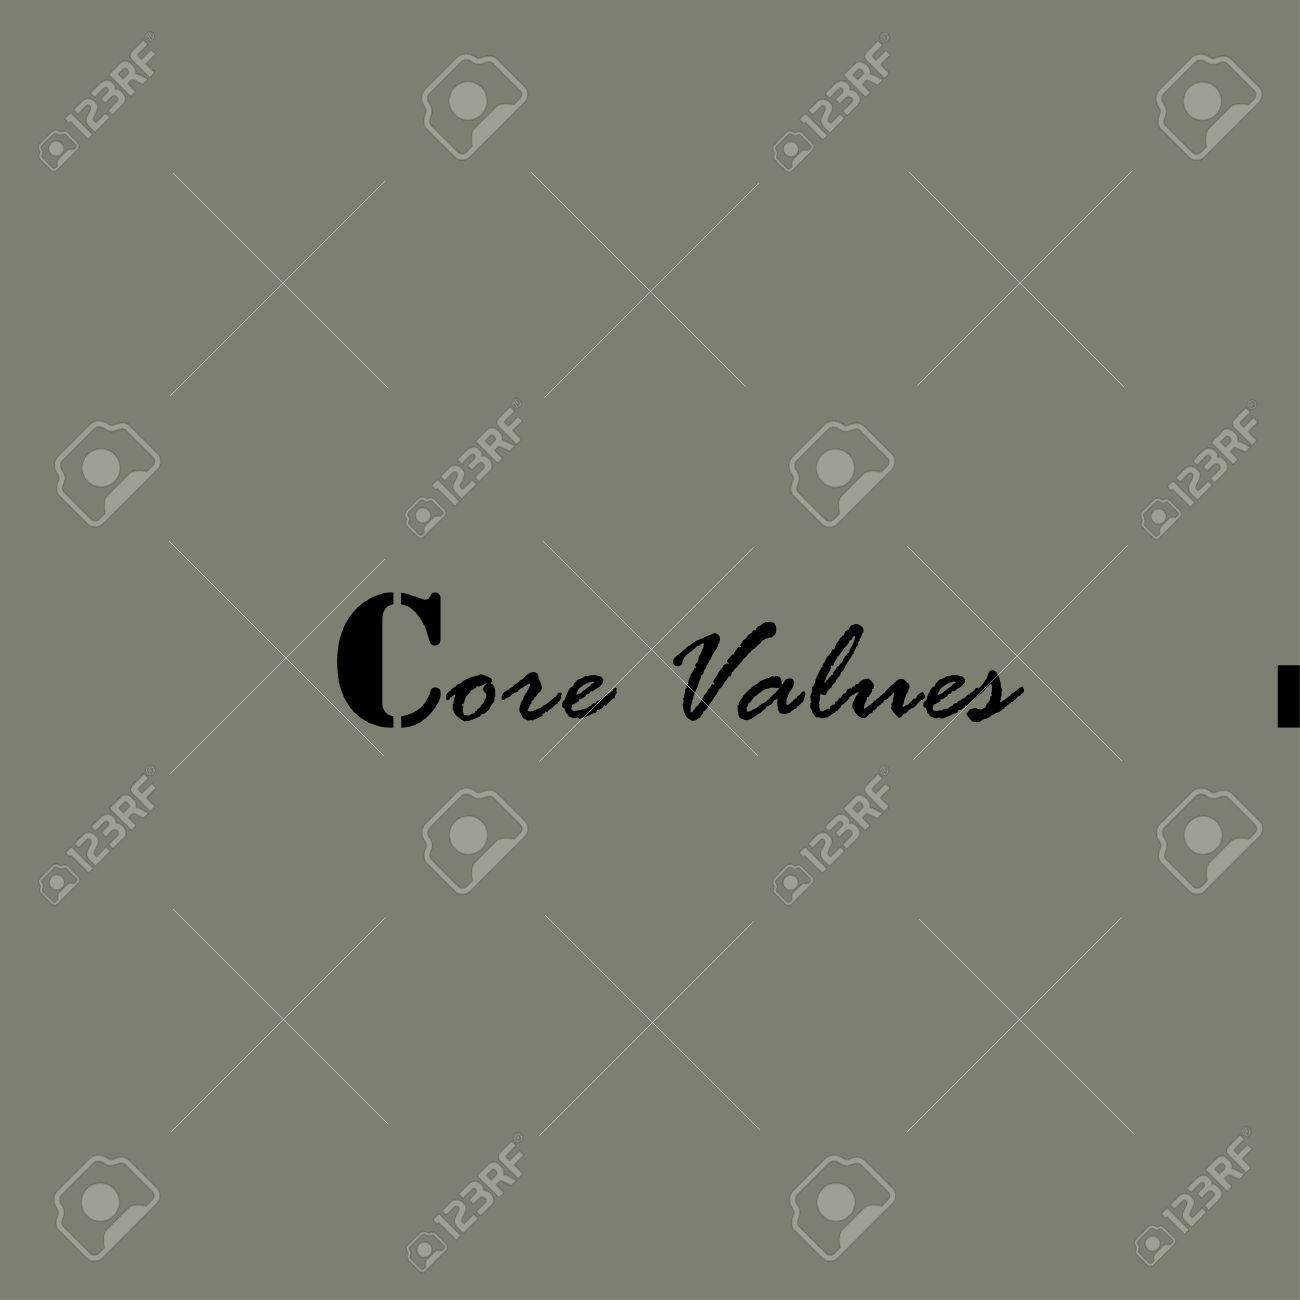 core values illustration template for the card or poster royalty